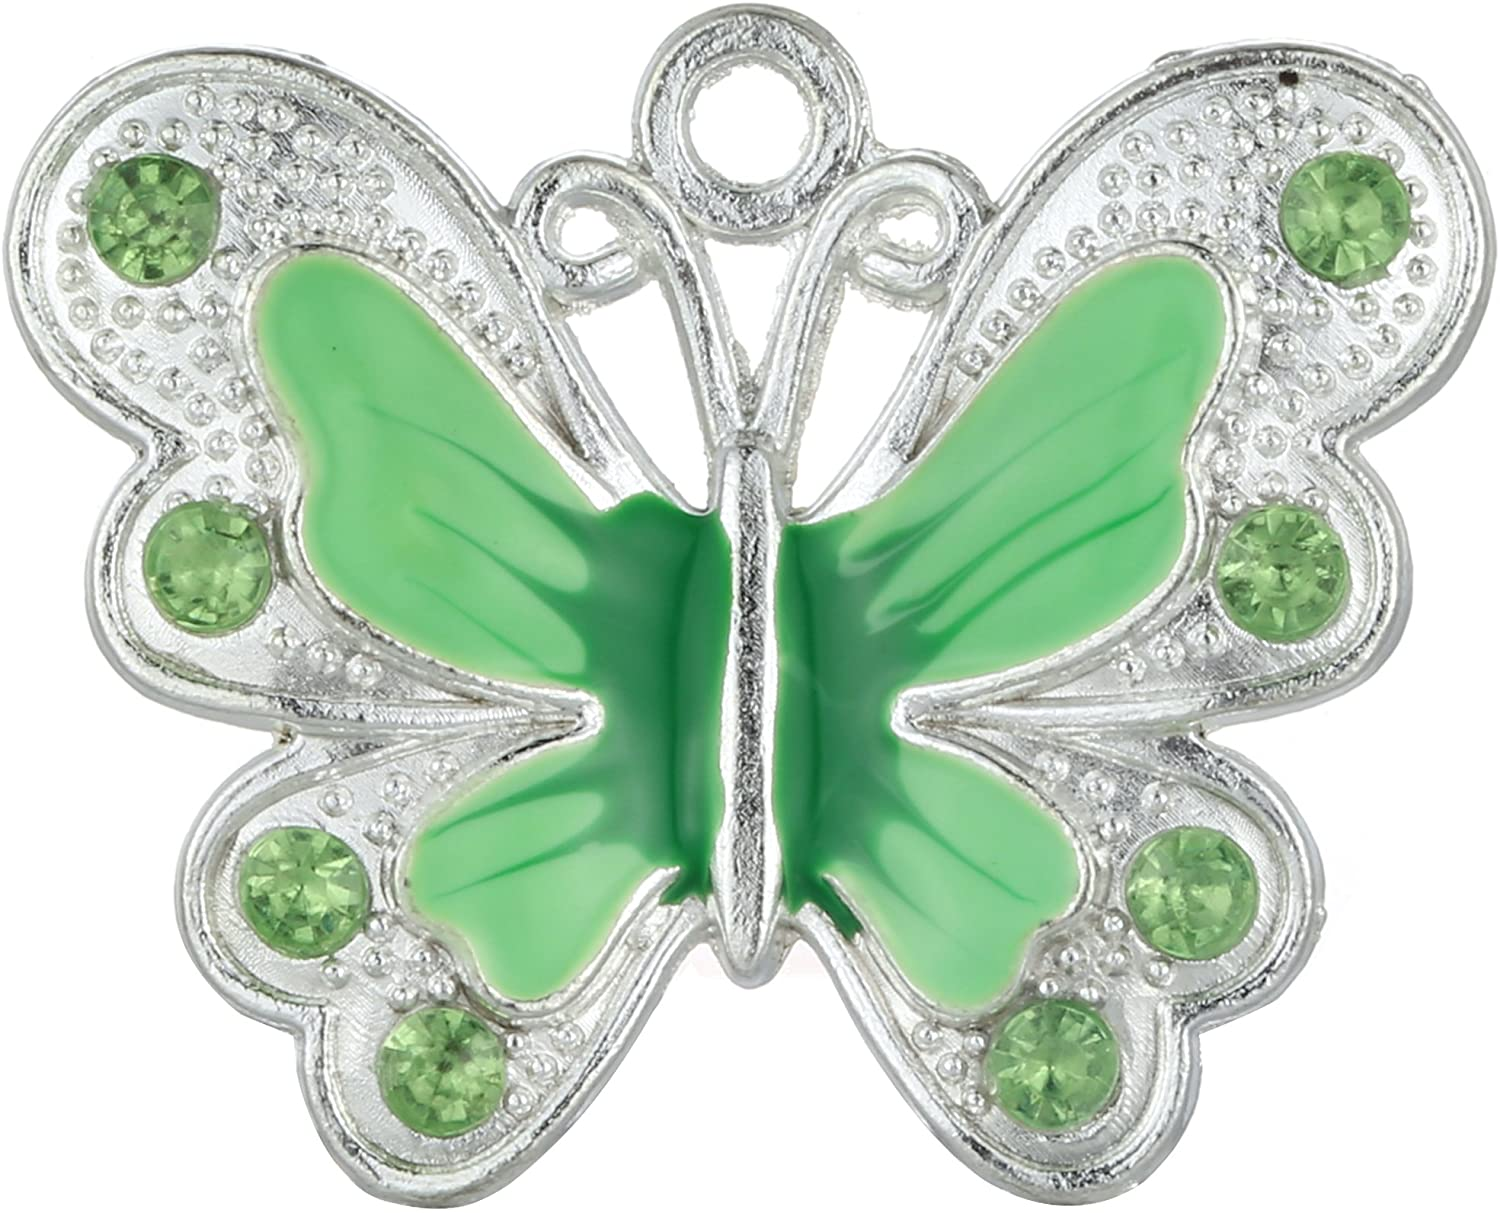 RUBYCA Silver Plated Big Butterfly Enamel Charm Beads Pendants for Jewelry Making DIY 14pcs Green